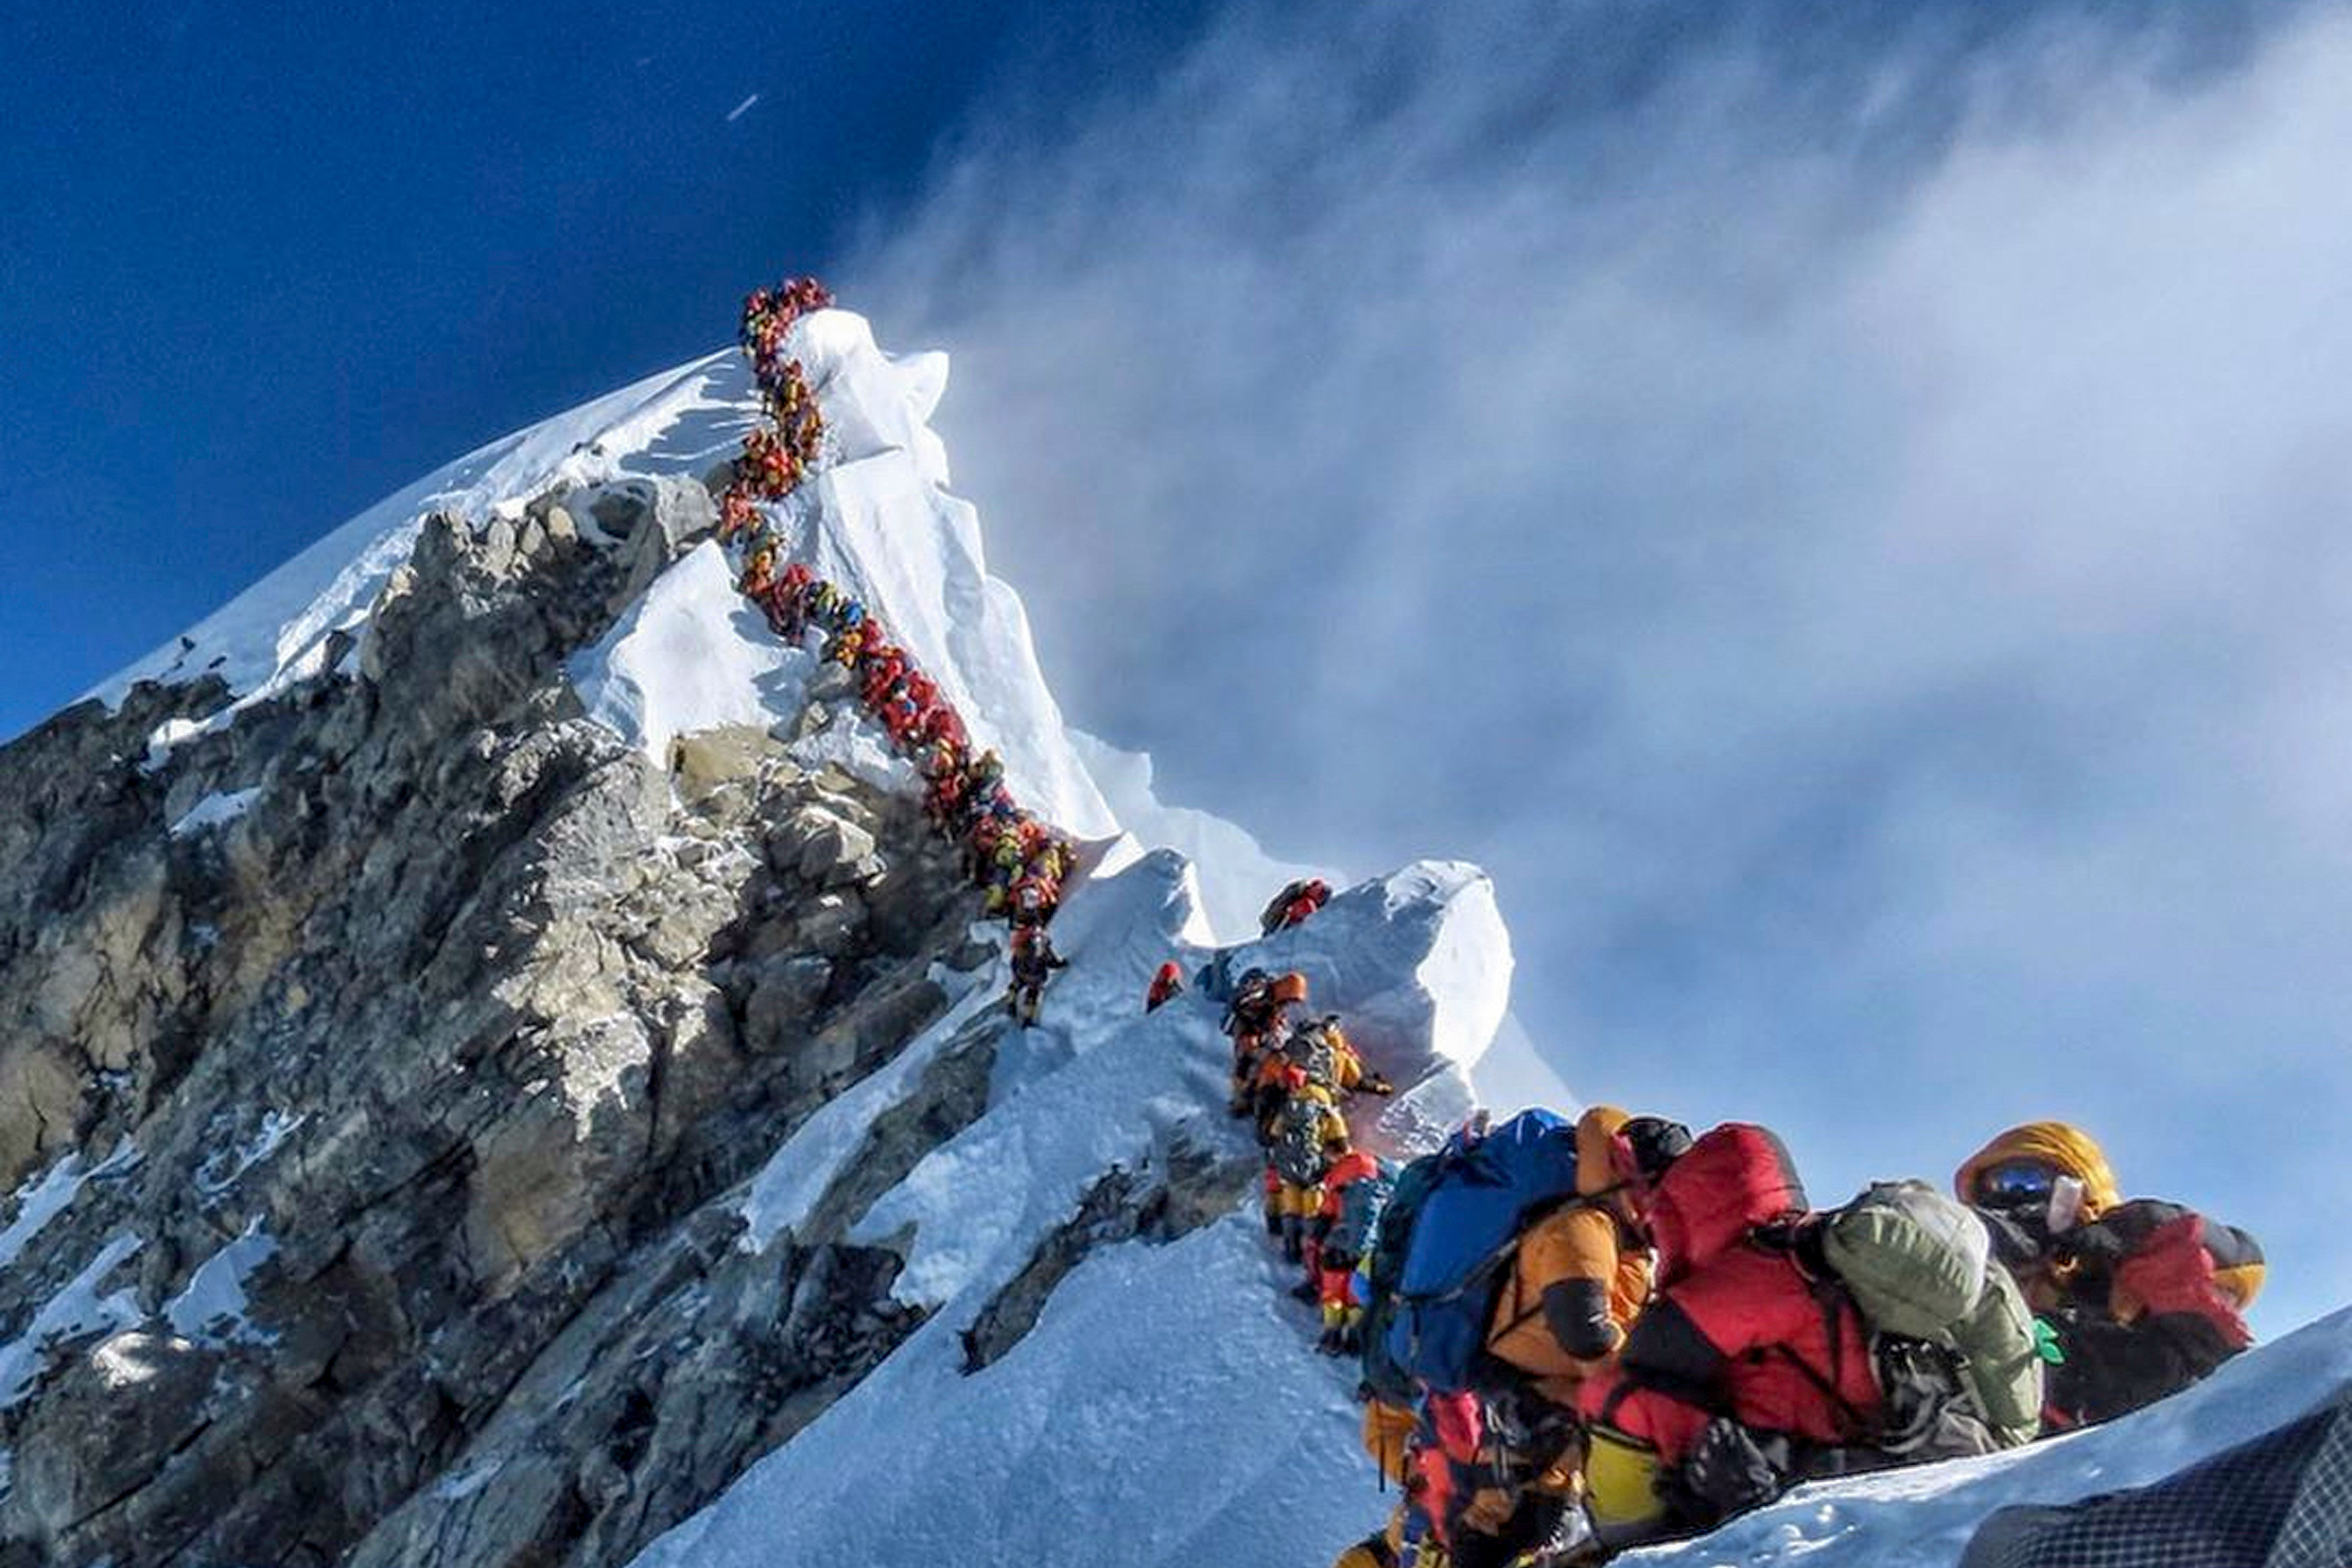 Photo: Mount Everest Crowding May 2019 - AP